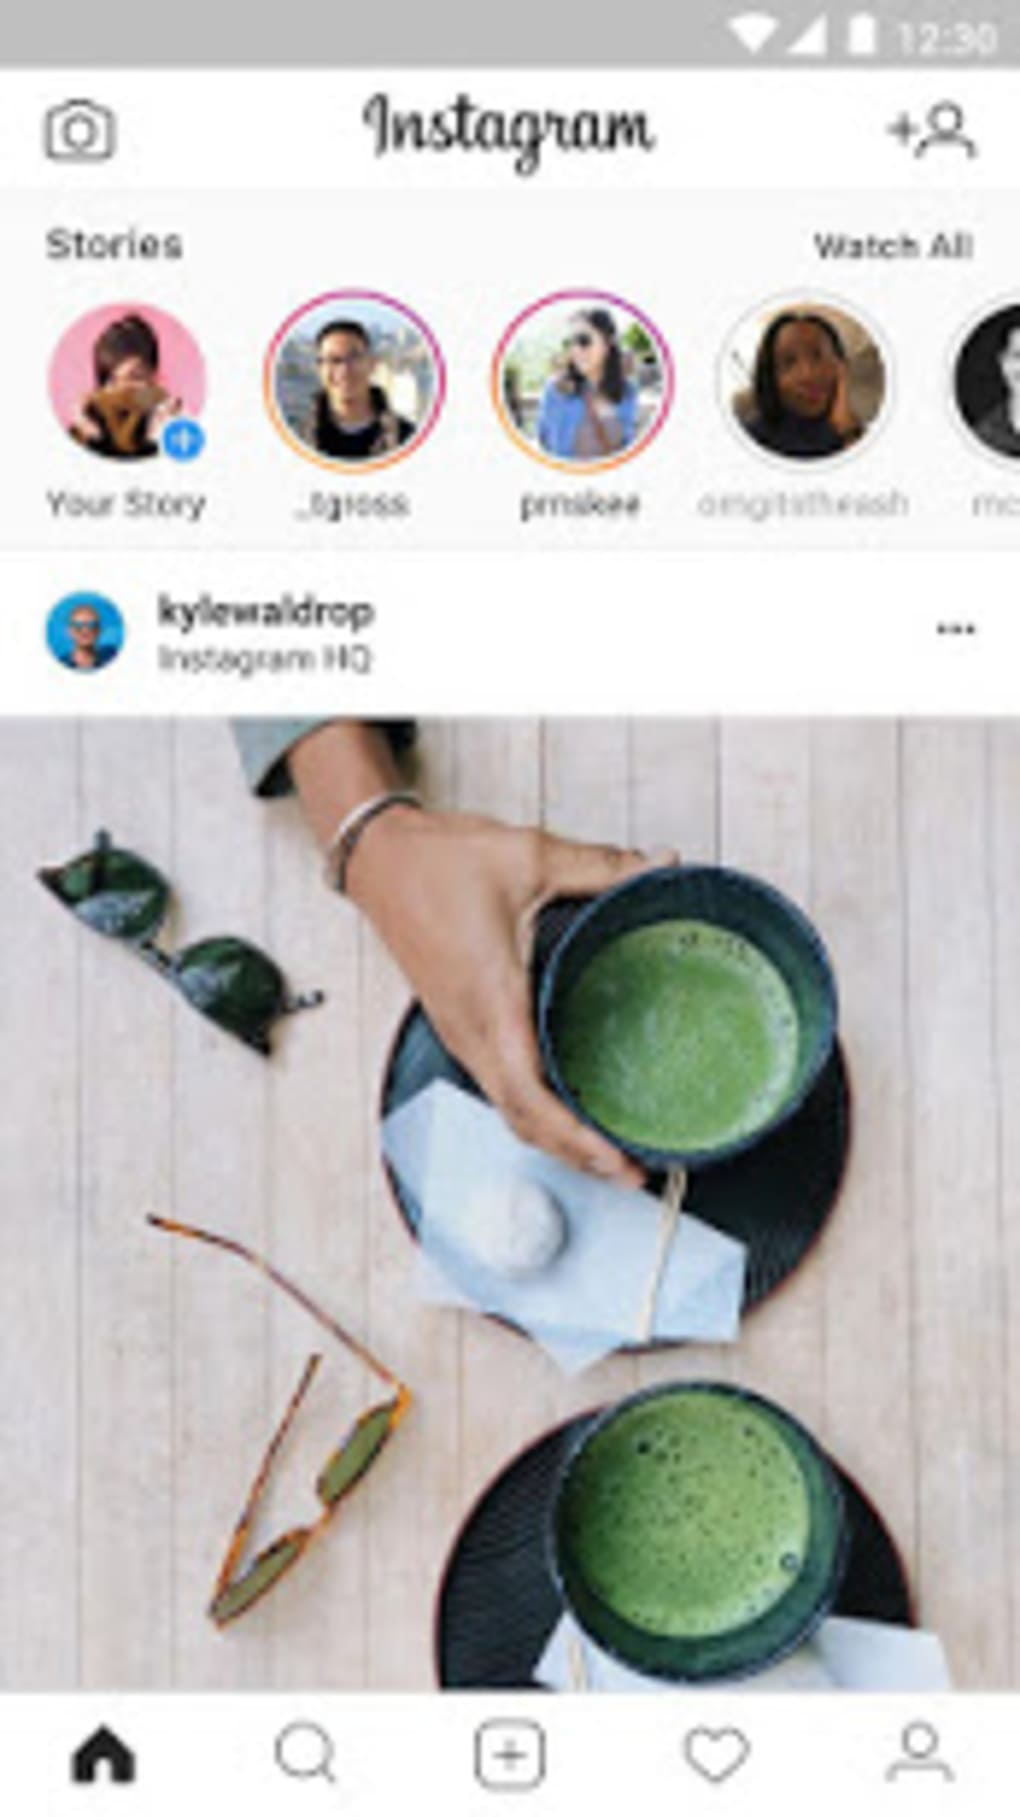 Instagram Lite for Android - Download